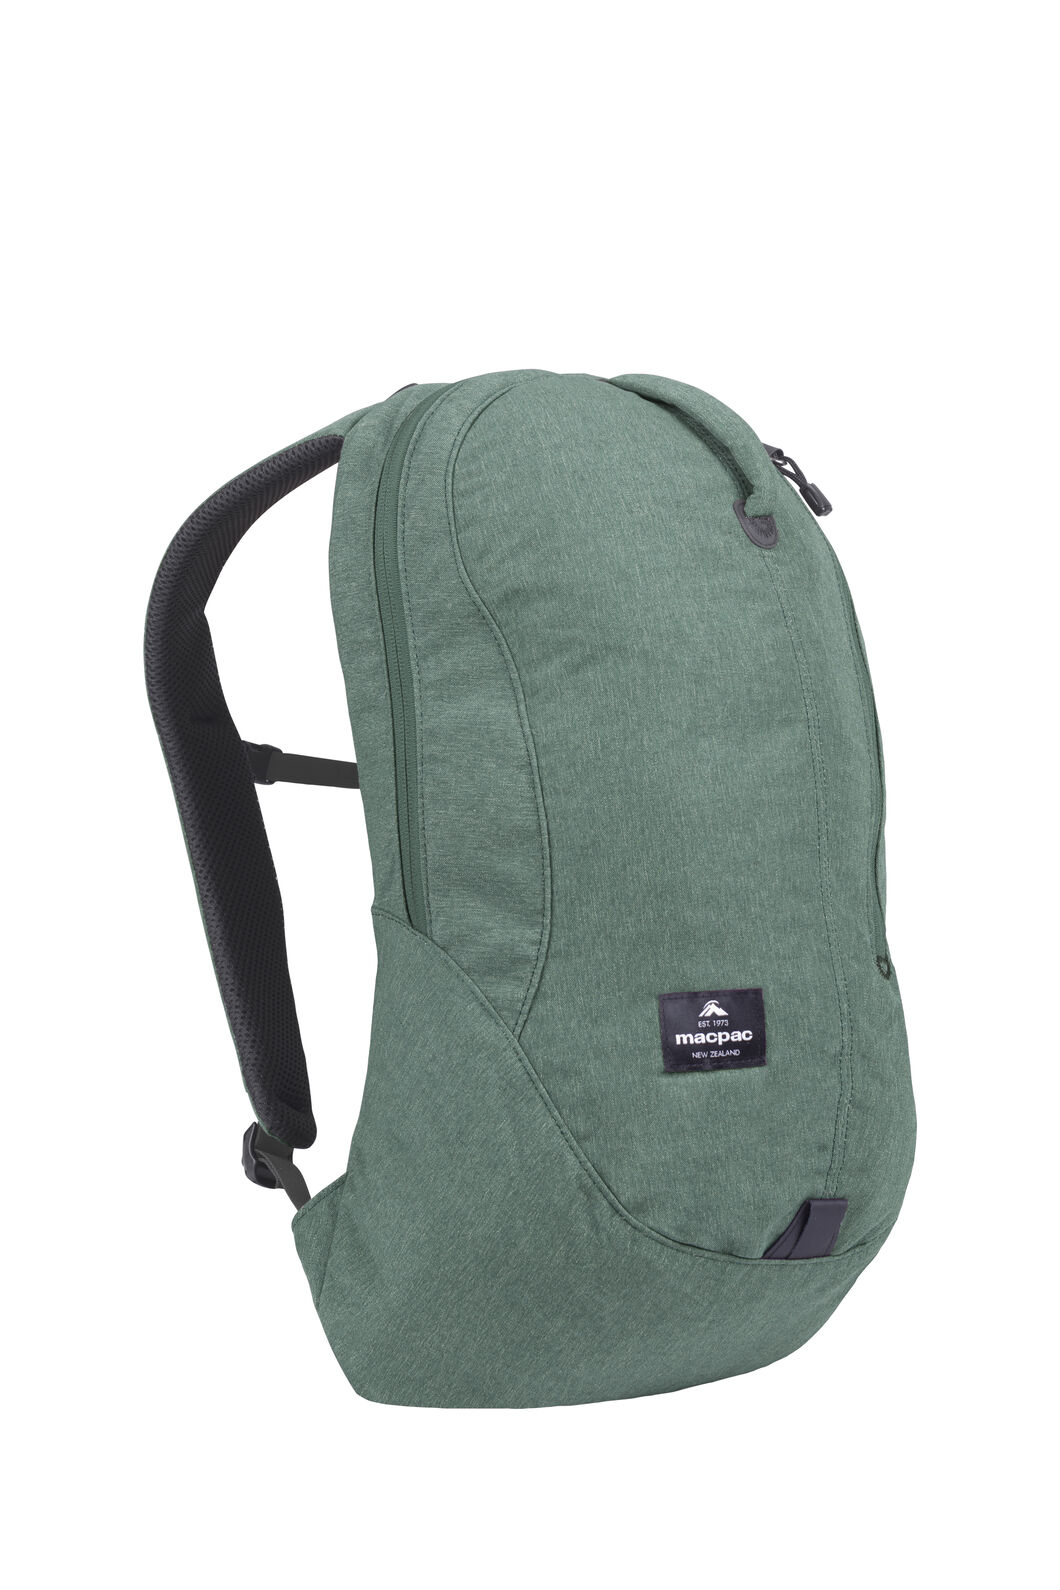 Macpac Kahuna 18L Urban Backpack, Stormy Sea, hi-res